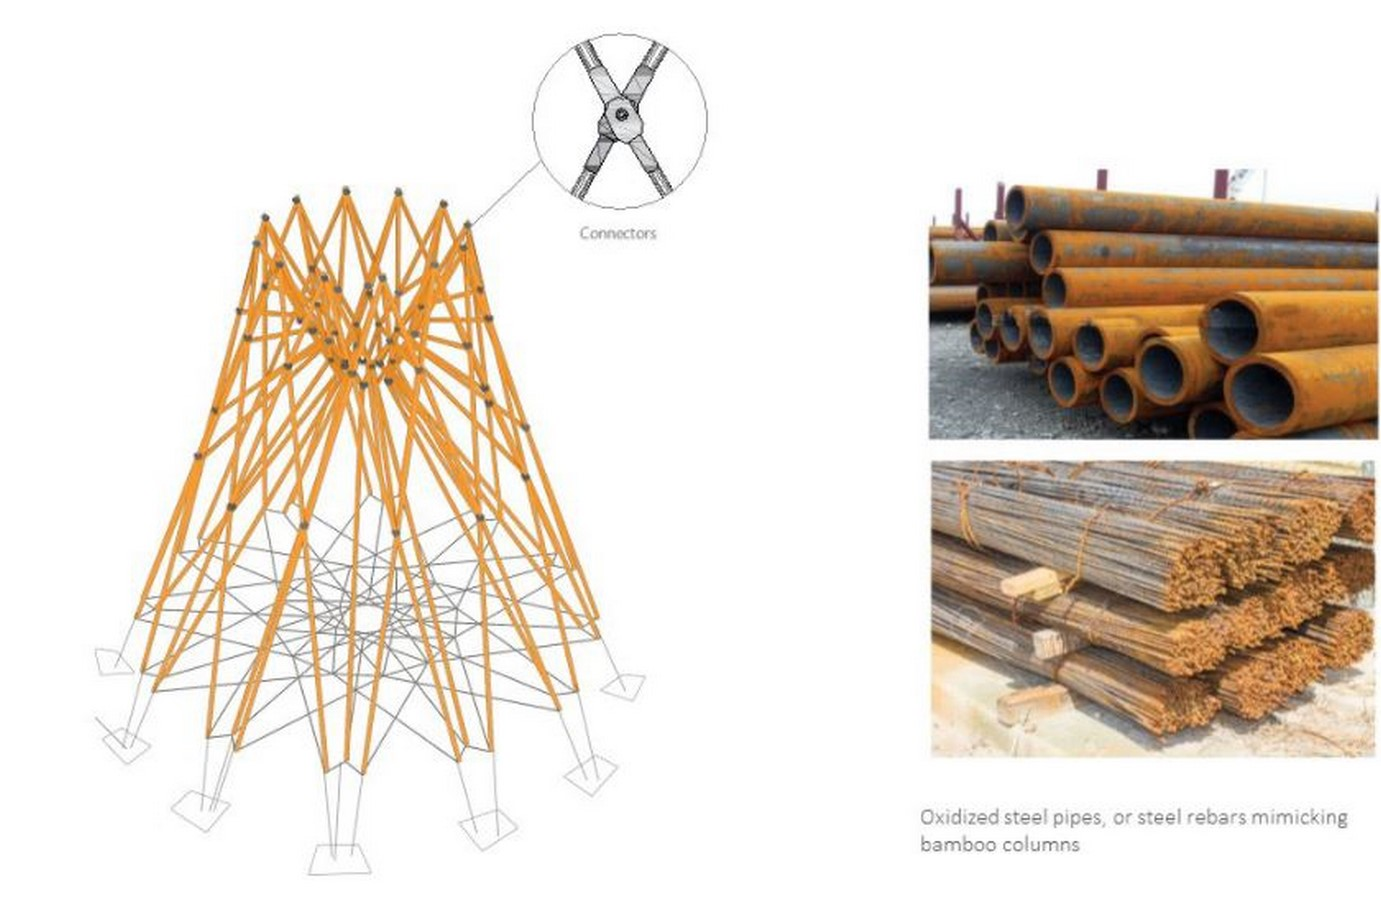 Nomad pavilion by Dina Haddadin and Rasem Kamal: Shelter and Water collection unit in Jordanian desert - Sheet9